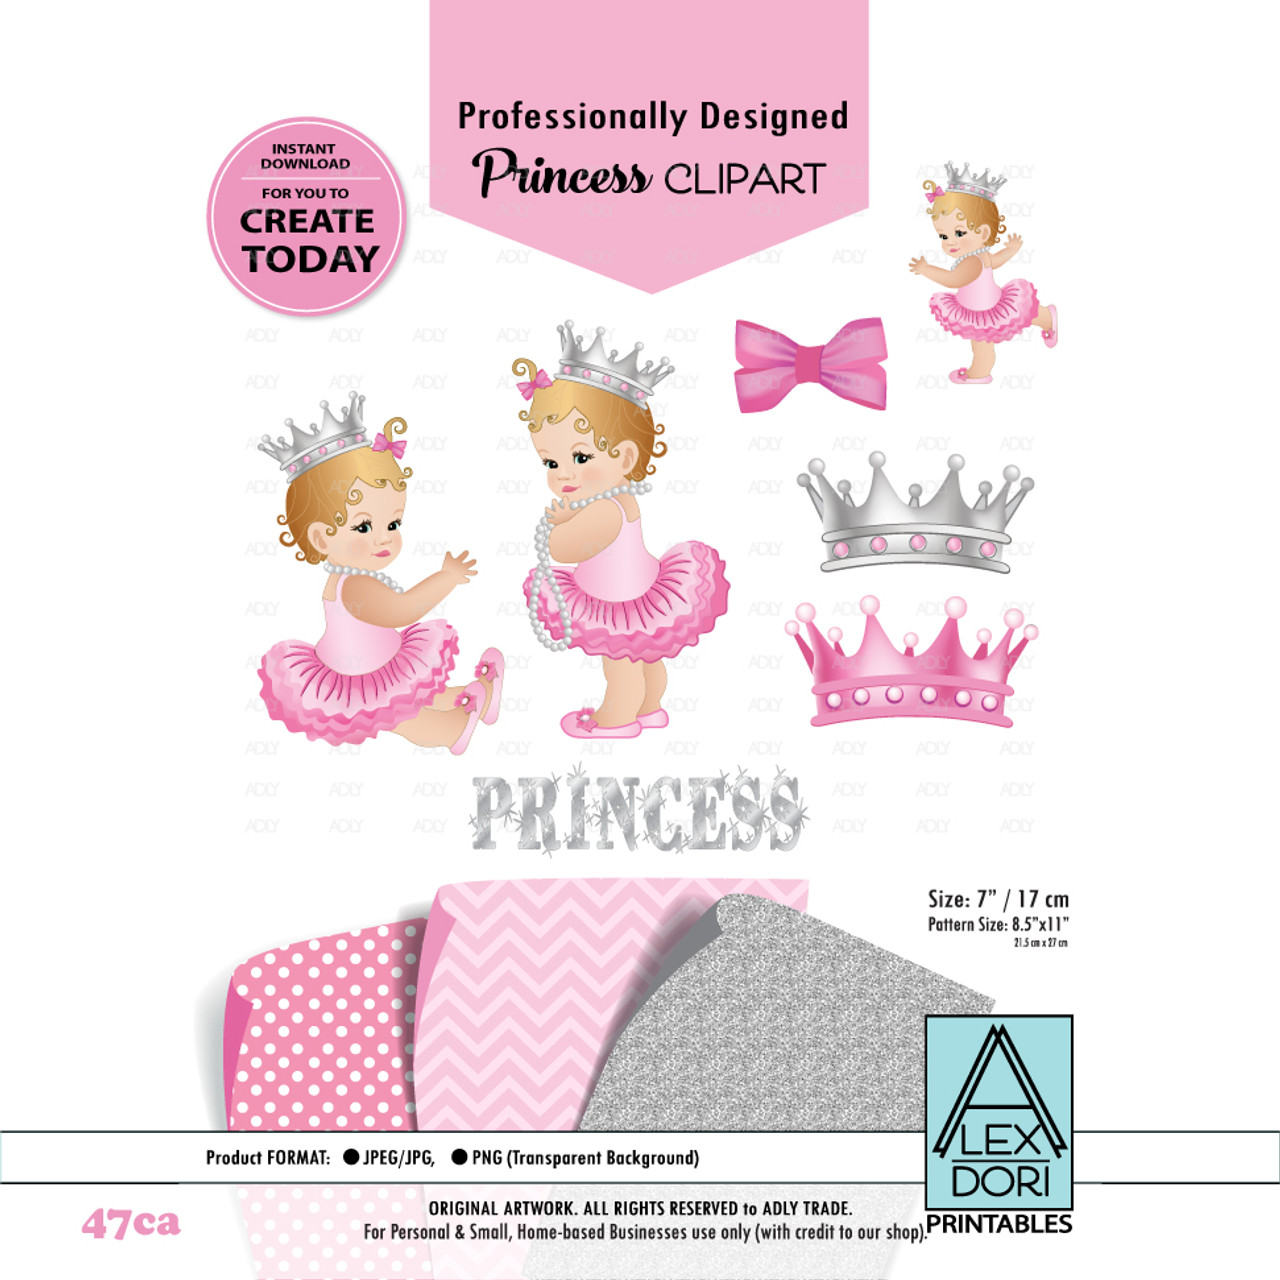 hight resolution of princess baby shower digital clipart pink and gray clipart royal baby shower crowns tiara clipart adly invitations and digital party designs